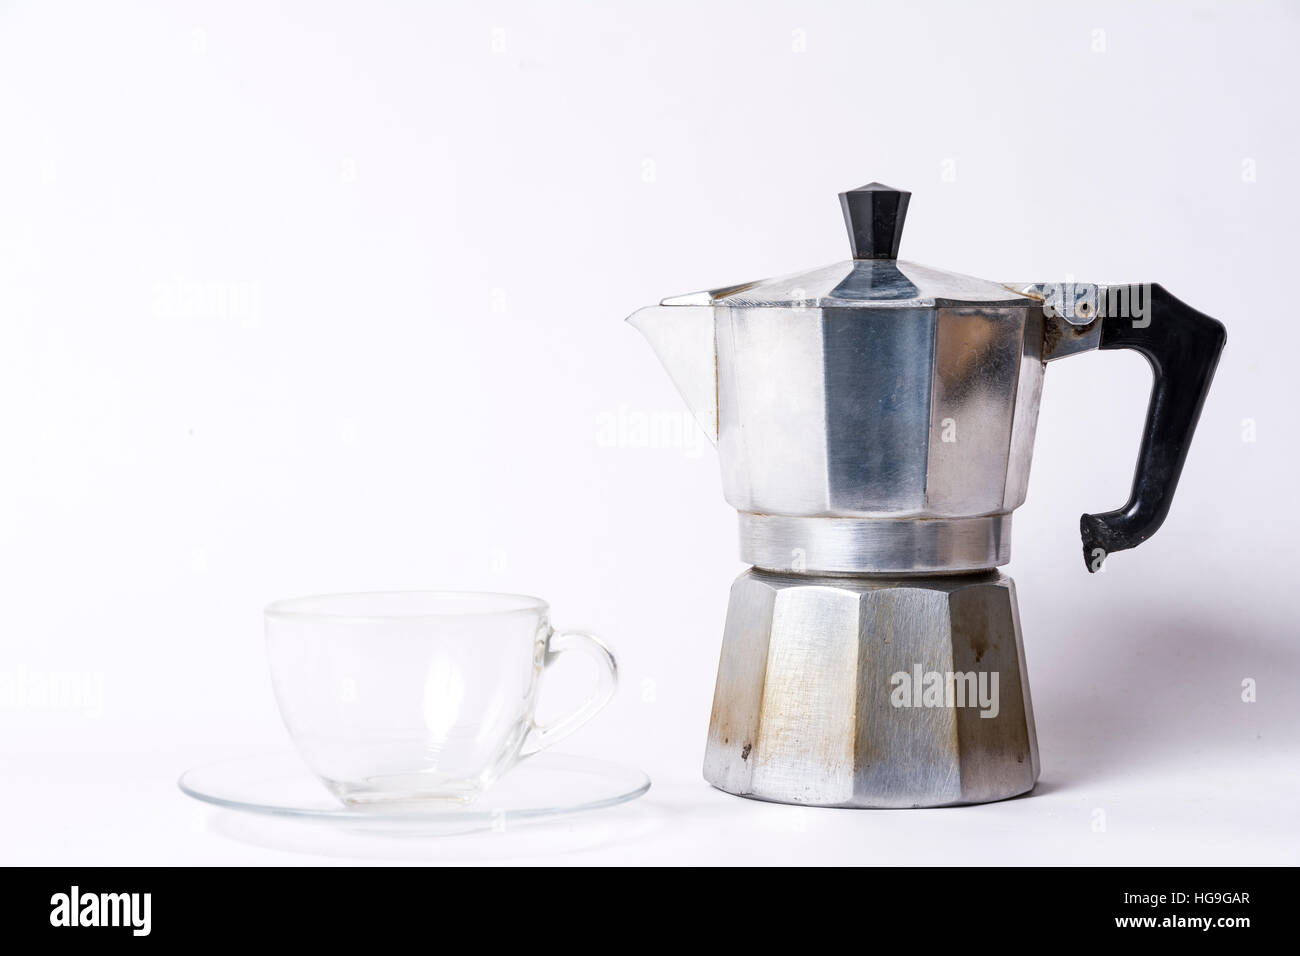 Italian coffee maker and an empty coffee cup on a white background - Stock Image